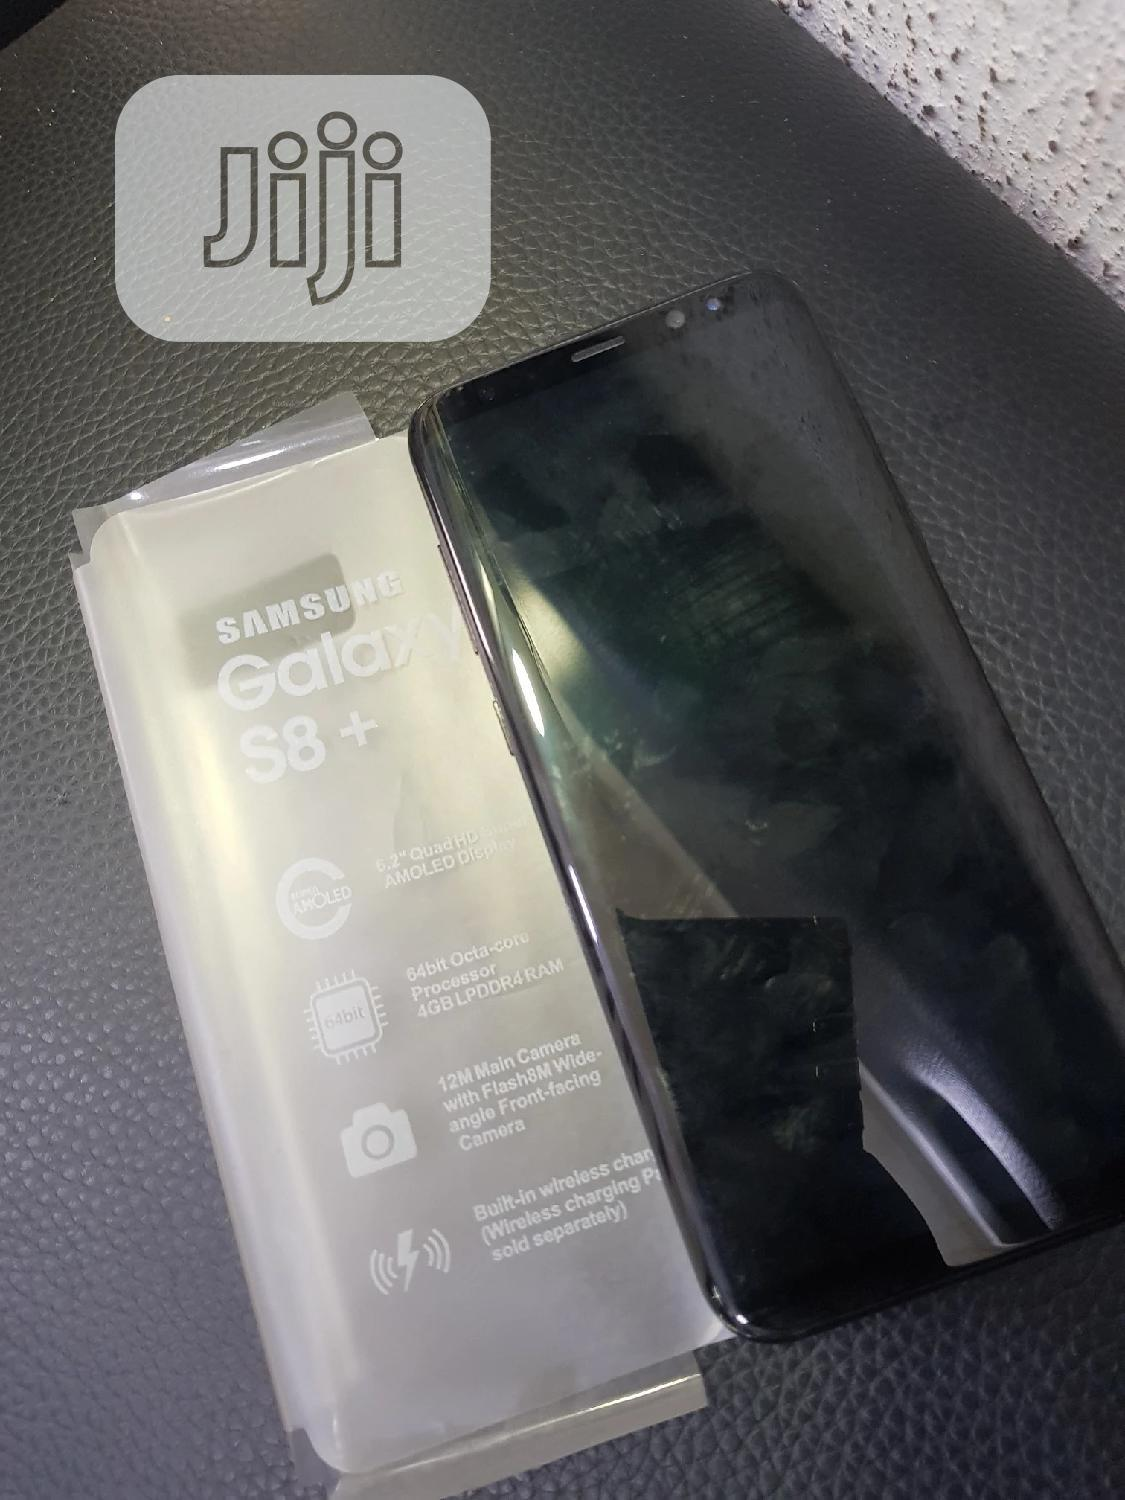 Samsung Galaxy S8 Plus 64 GB Black